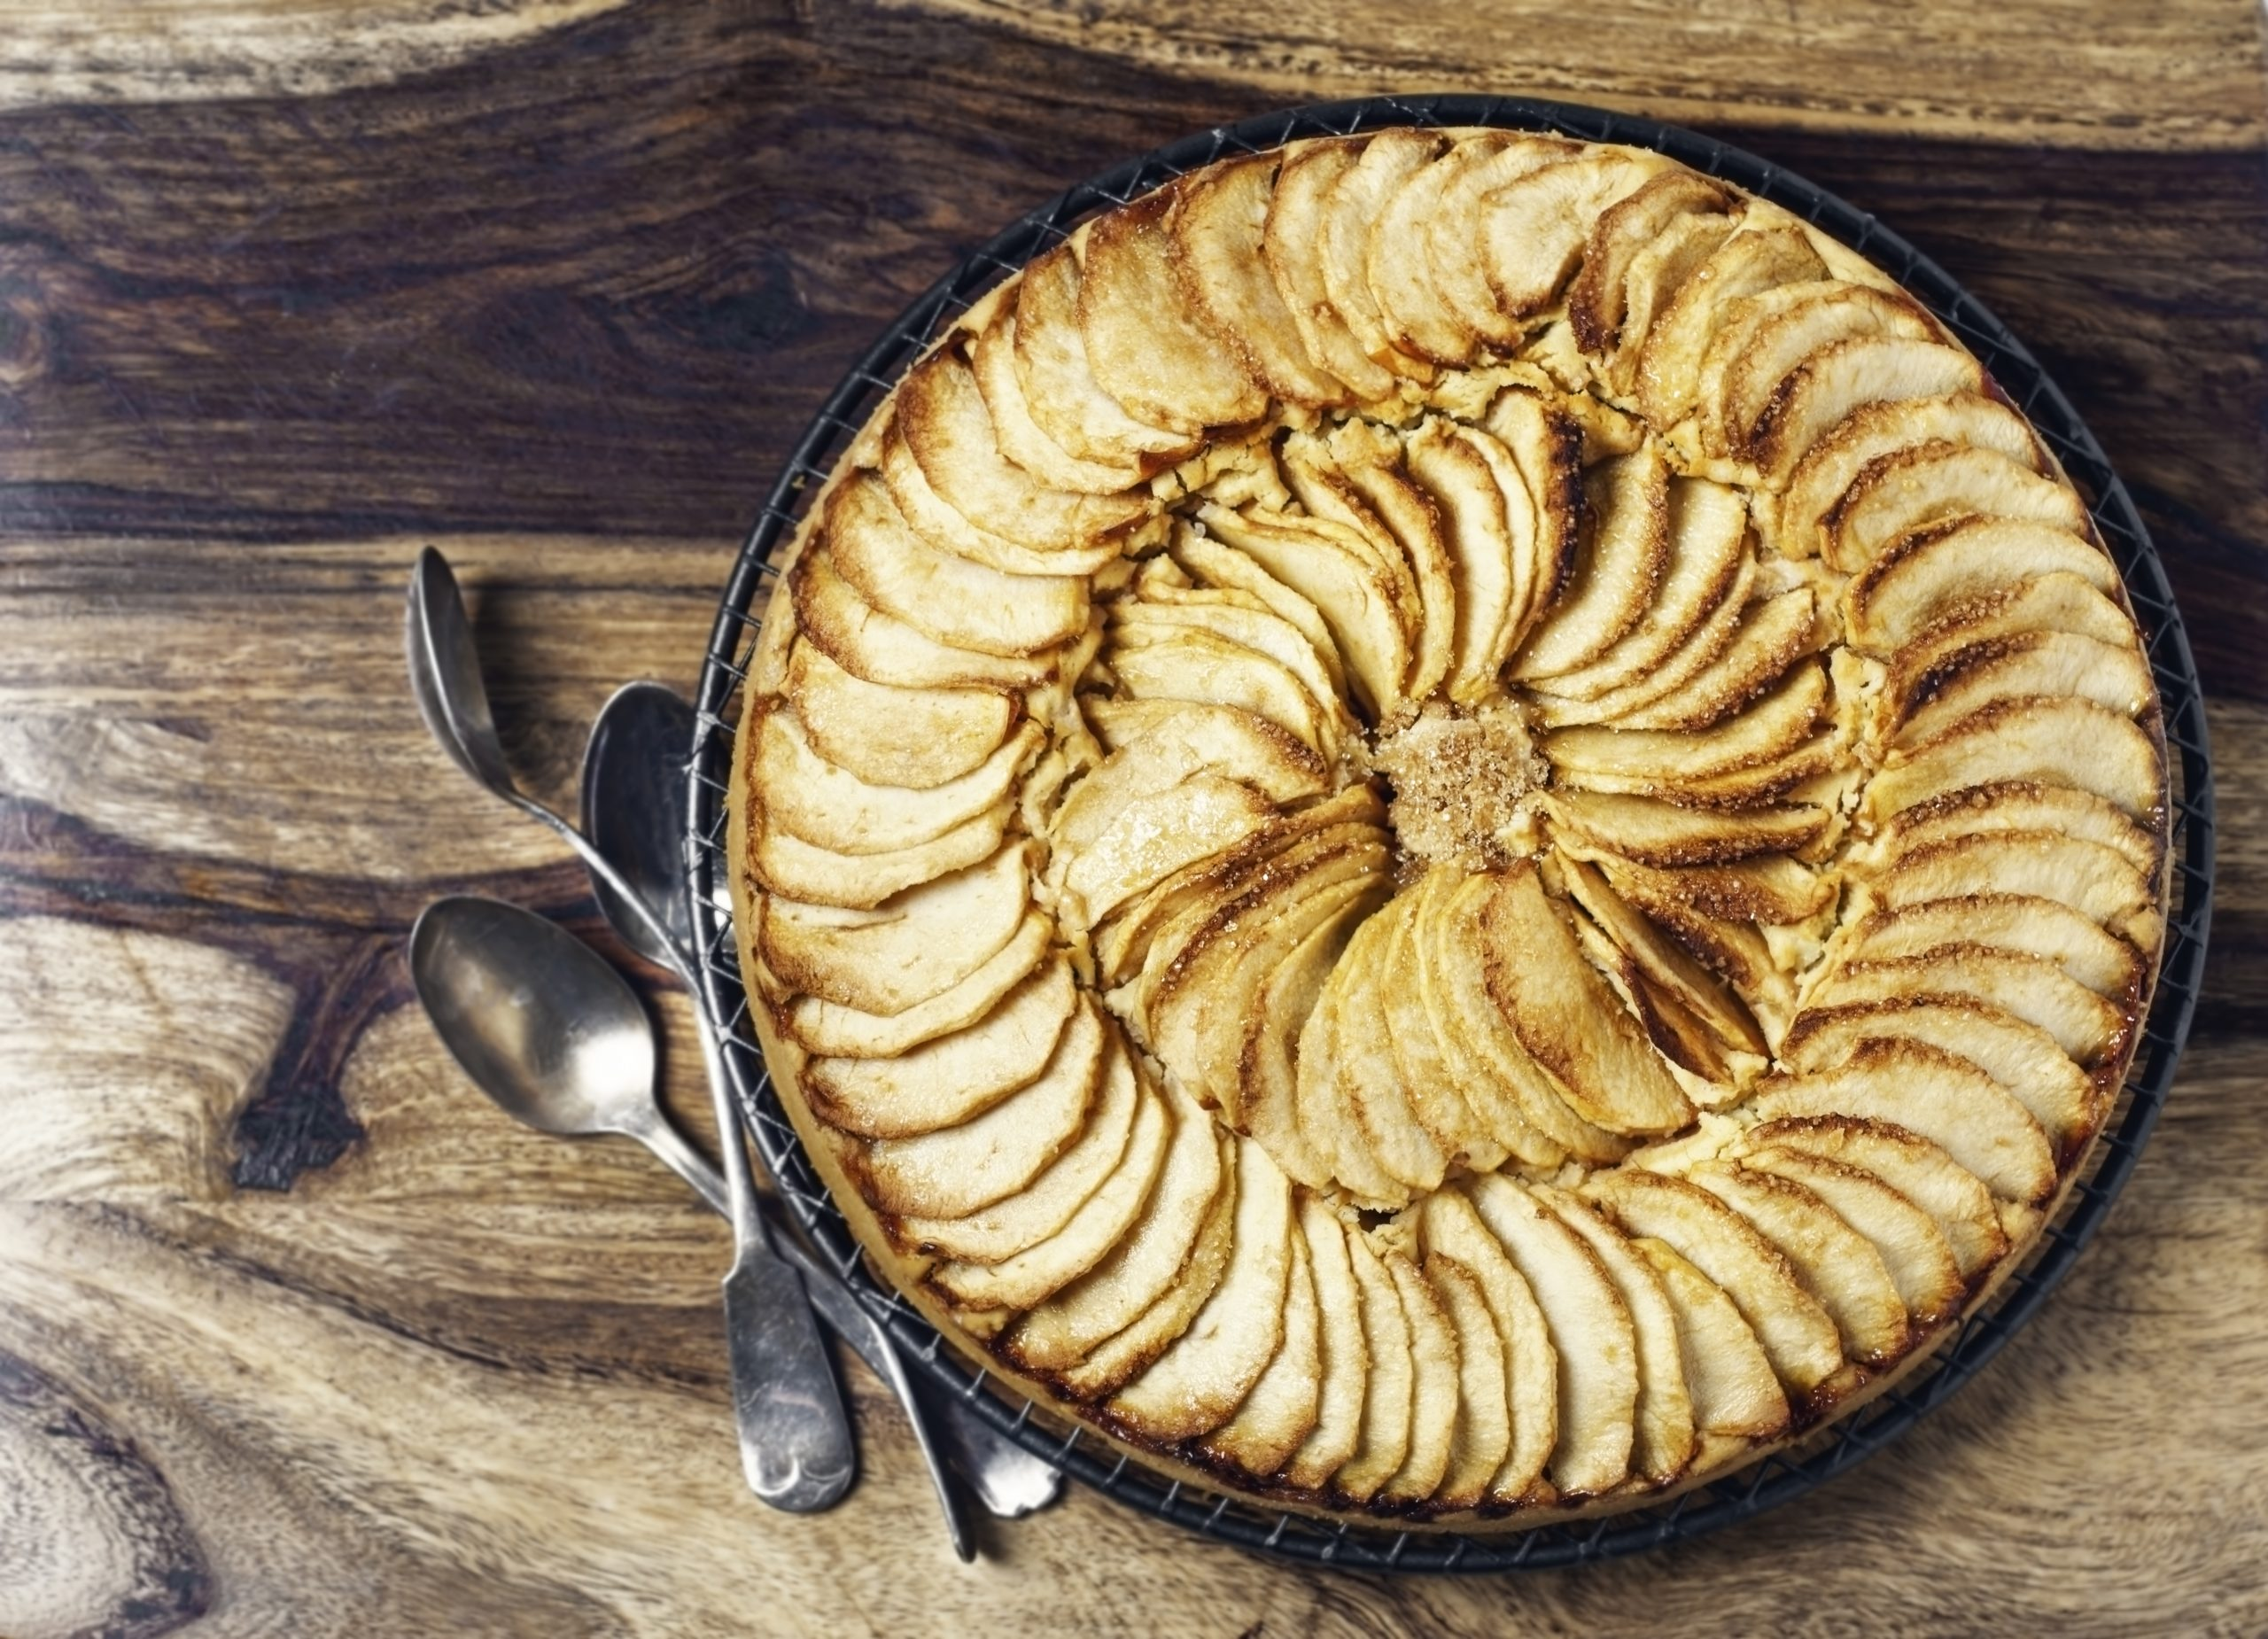 How to make french apple tart